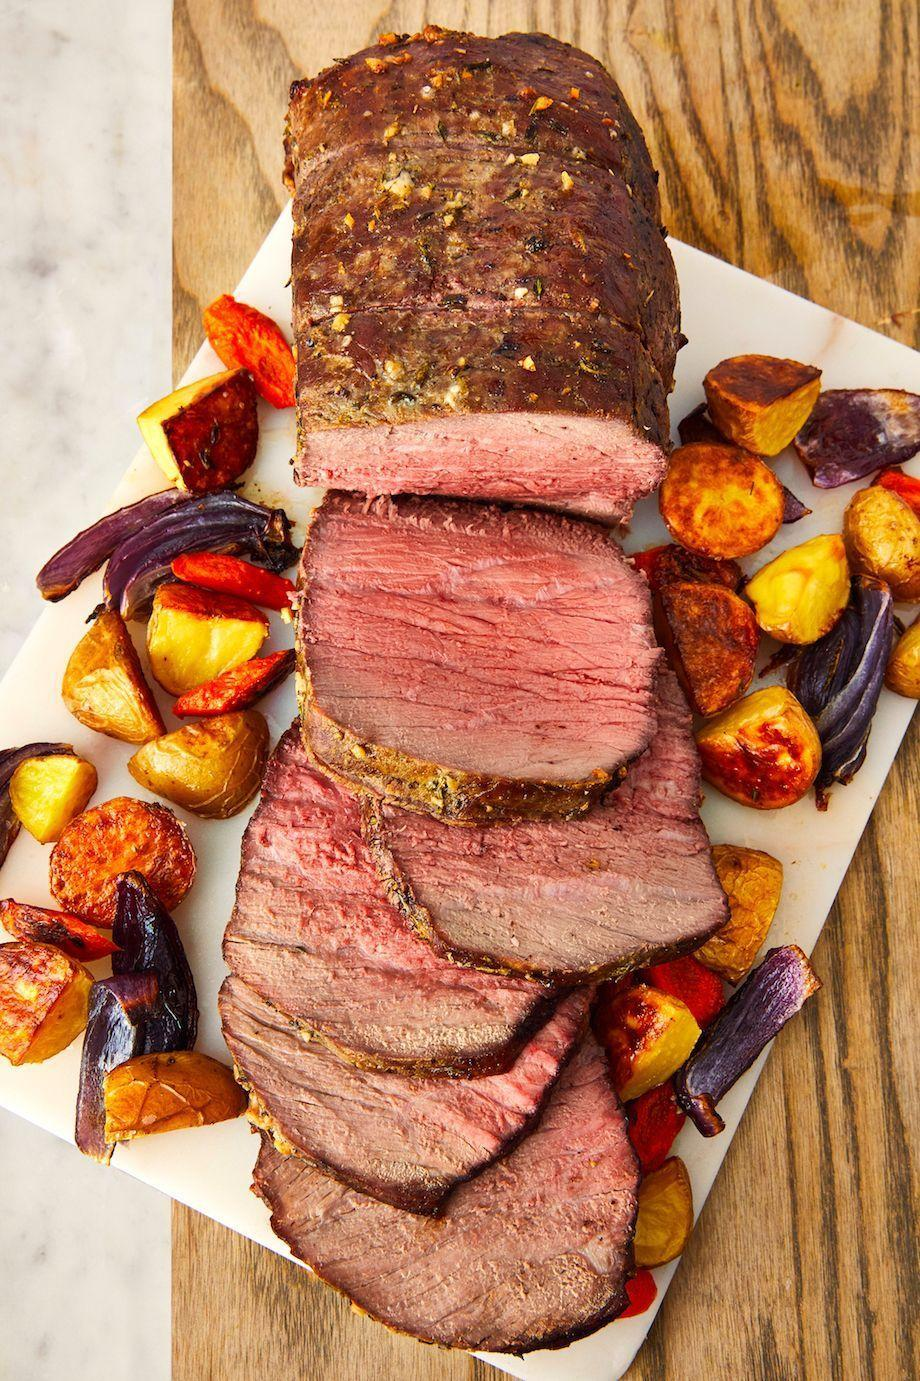 "<p>Roast <a href=""http://delish.prod.hearstapps.com/uk/beef-recipes/"" rel=""nofollow noopener"" target=""_blank"" data-ylk=""slk:beef"" class=""link rapid-noclick-resp"">beef</a> might sound fancy and complicated to make, but it's actually quite simple! With a good piece of meat and some simple herbs, you can have roast beef that's way more tender and flavourful than the store-bought kind.</p><p>Get the <a href=""https://www.delish.com/uk/cooking/recipes/a28926155/perfect-roast-beef-recipe/"" rel=""nofollow noopener"" target=""_blank"" data-ylk=""slk:Roast Beef"" class=""link rapid-noclick-resp"">Roast Beef</a> recipe. </p>"